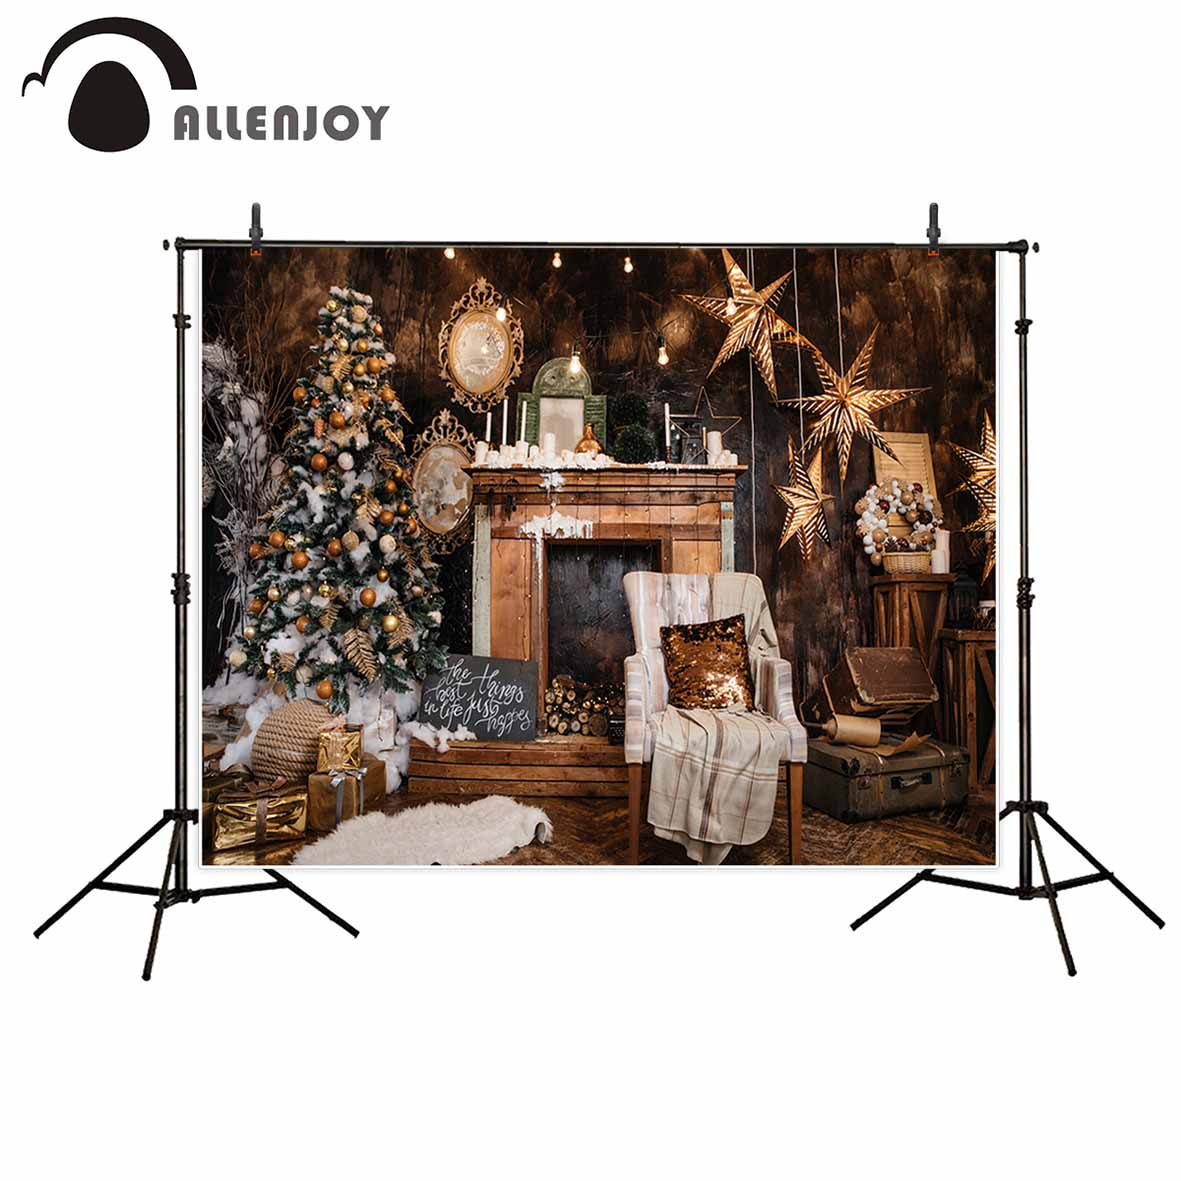 Allenjoy Christmas photographic background vintage stars tree wood chair new professional backdrop photobooth photo studio